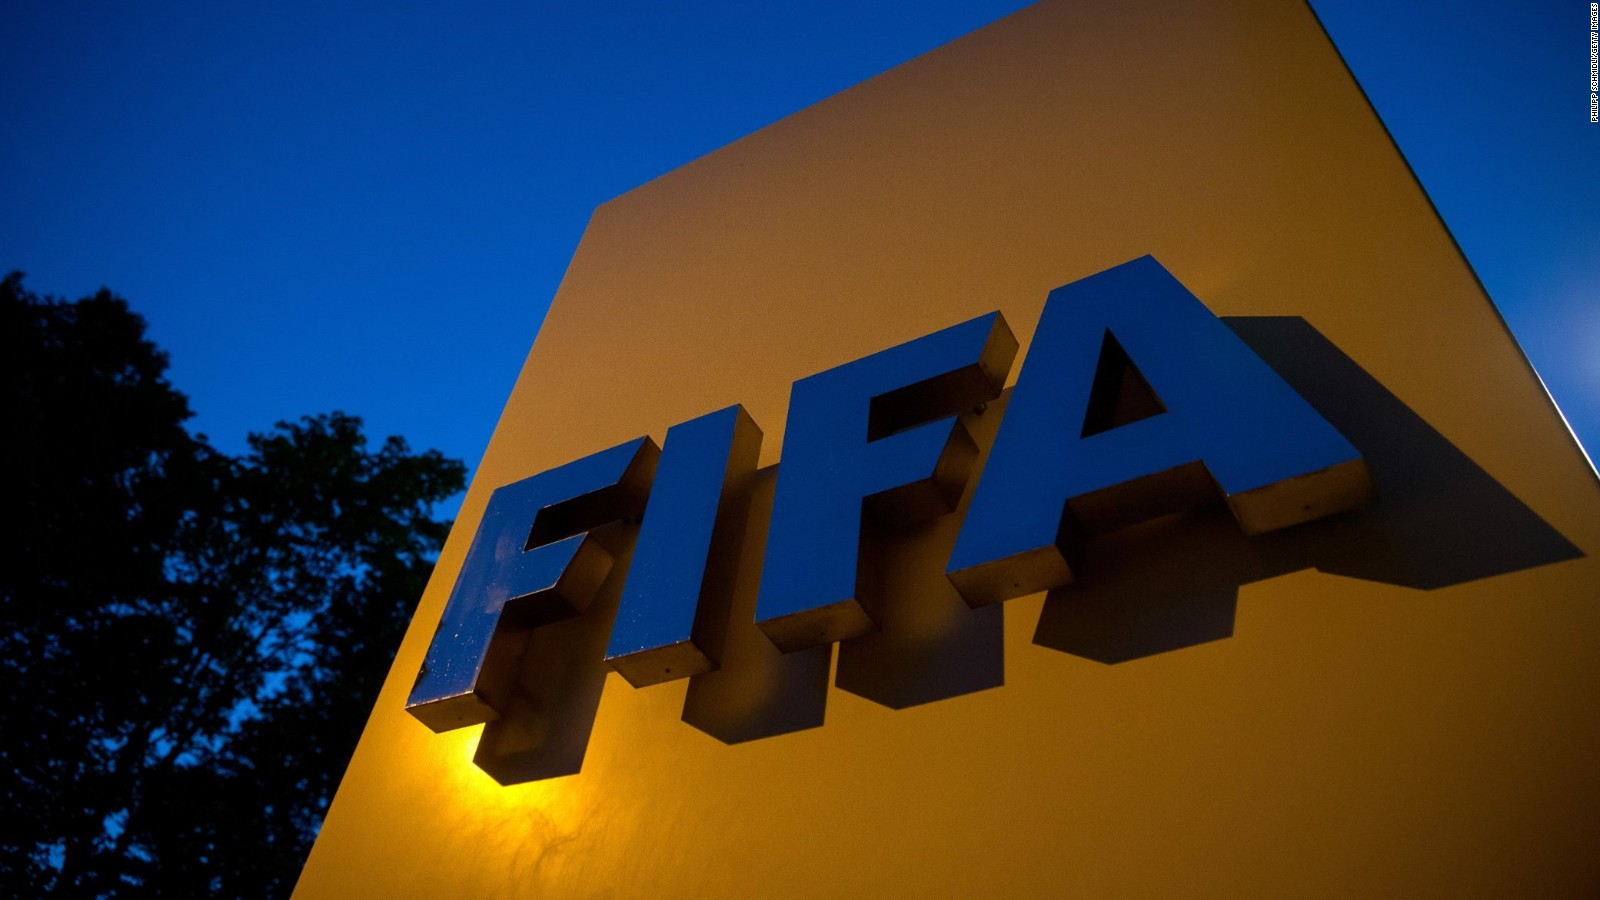 Sport law normalisation committee appointed for cameroonian fa